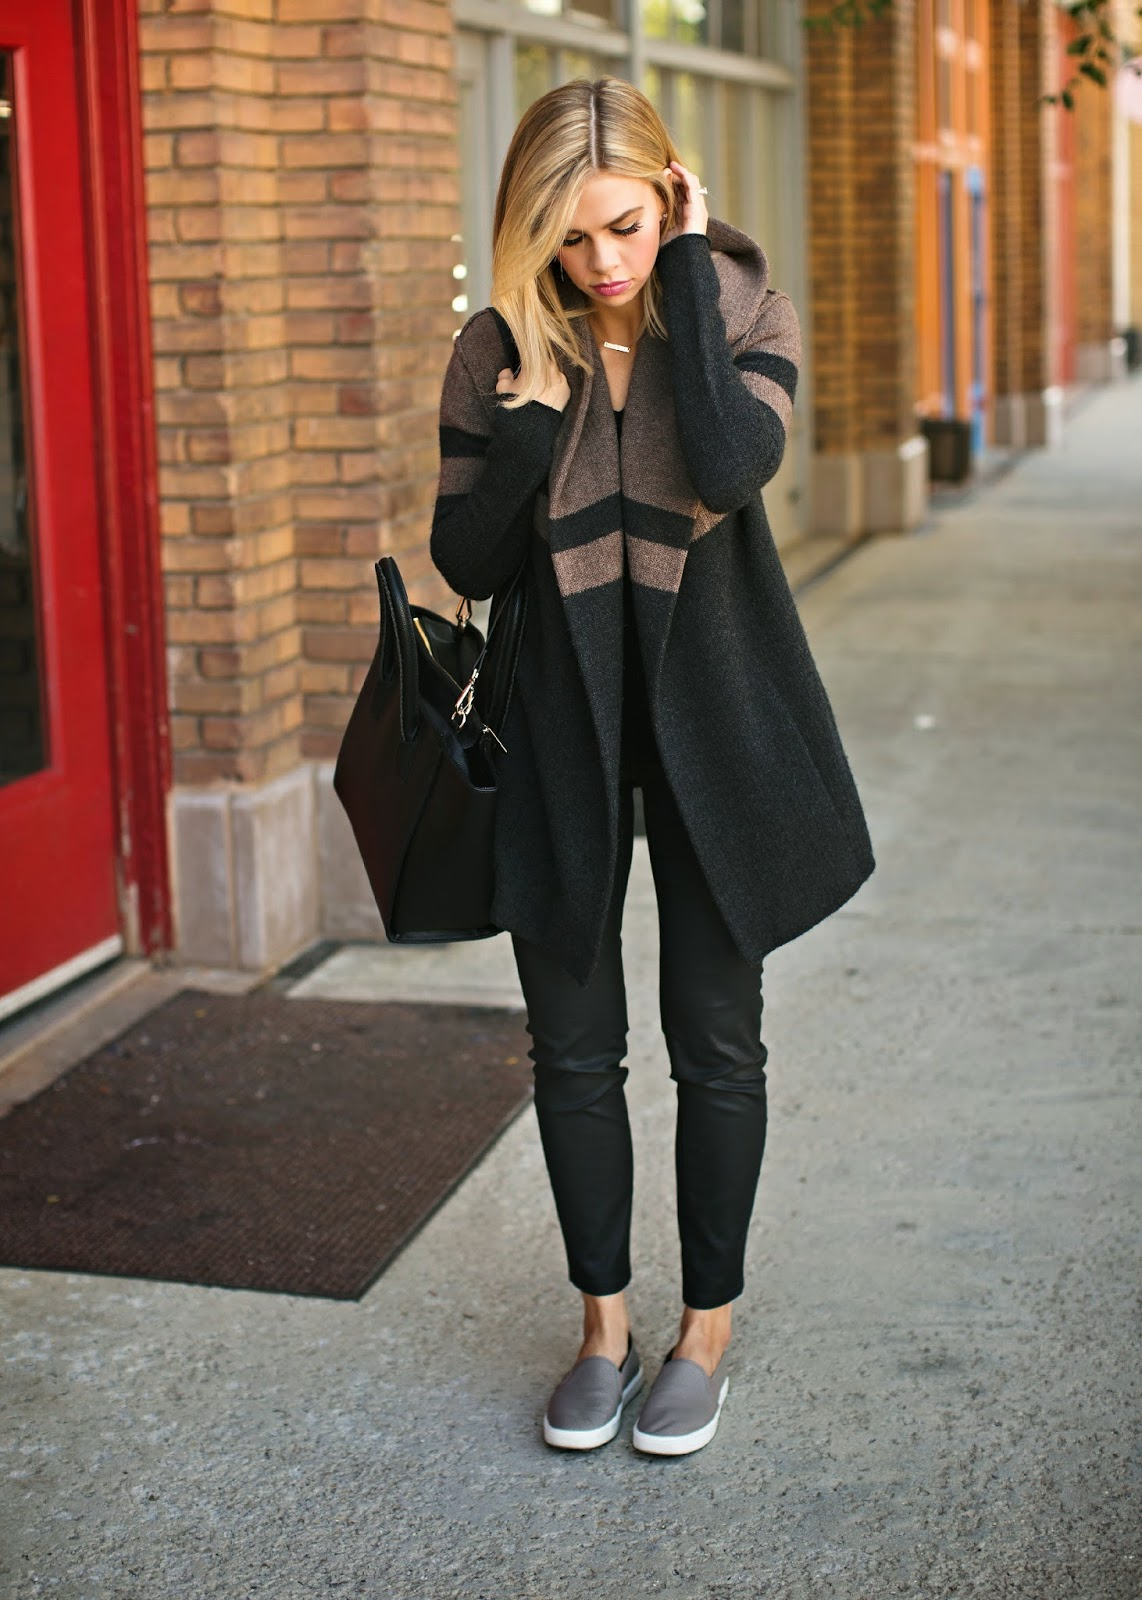 Kensington Way: Outfit: The Sweater Coat